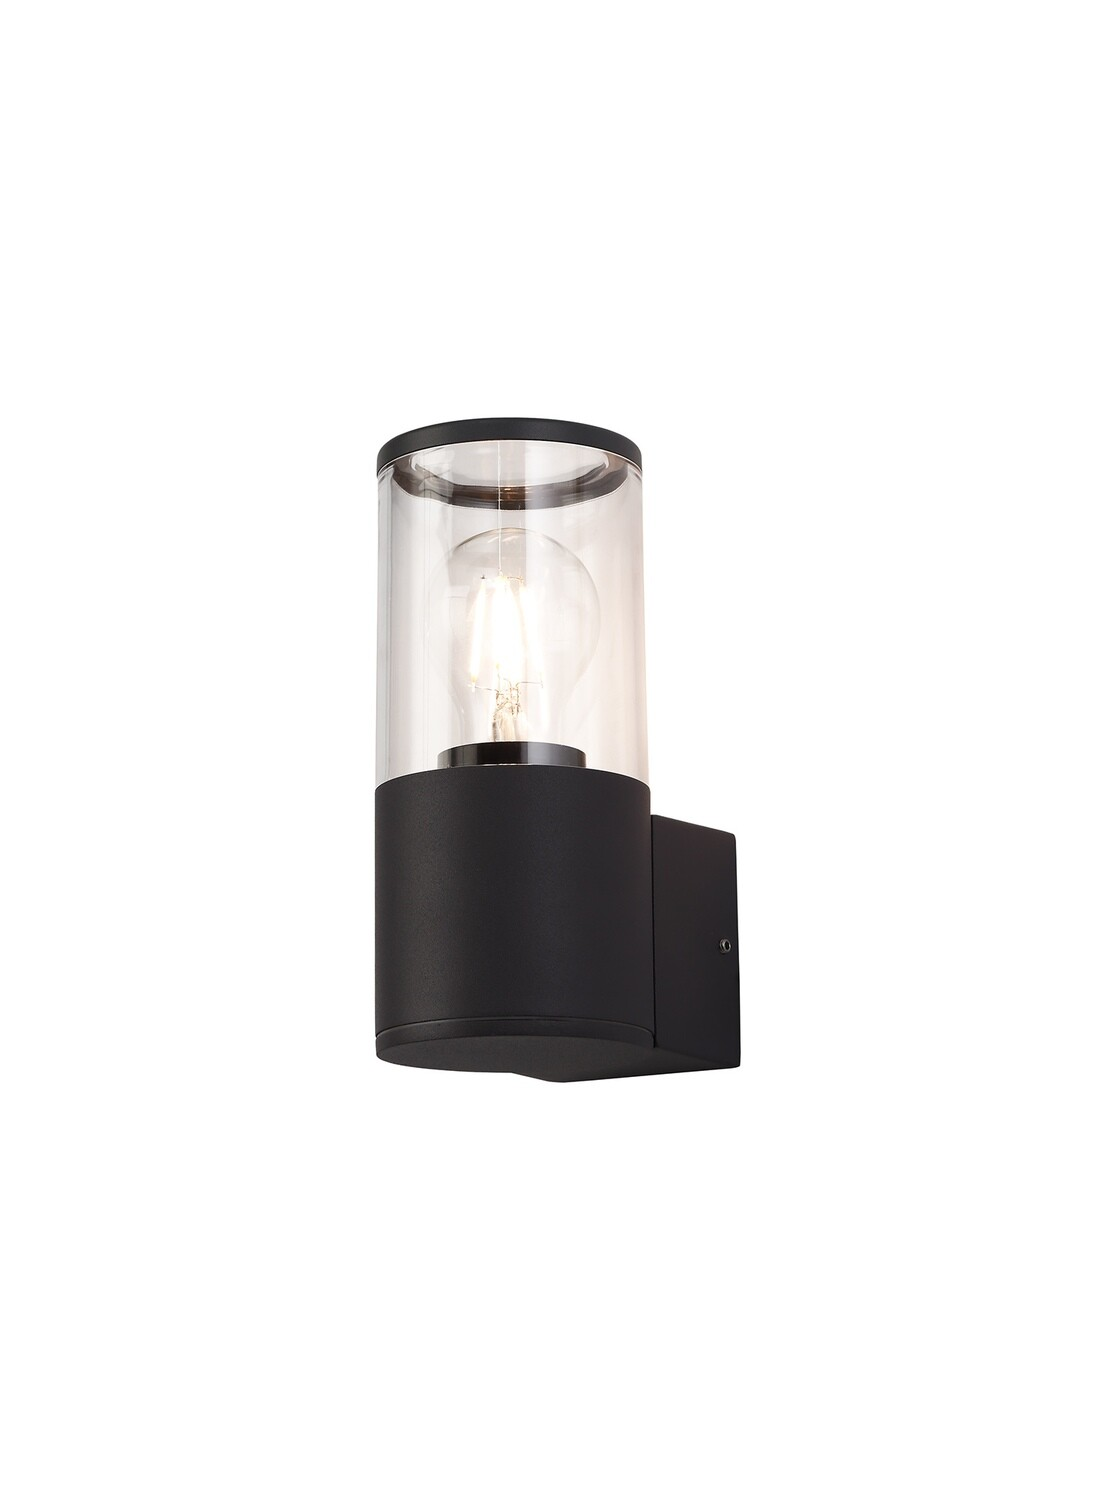 Gigil Wall Lamp 1 x E27, IP54, Anthracite/Clear